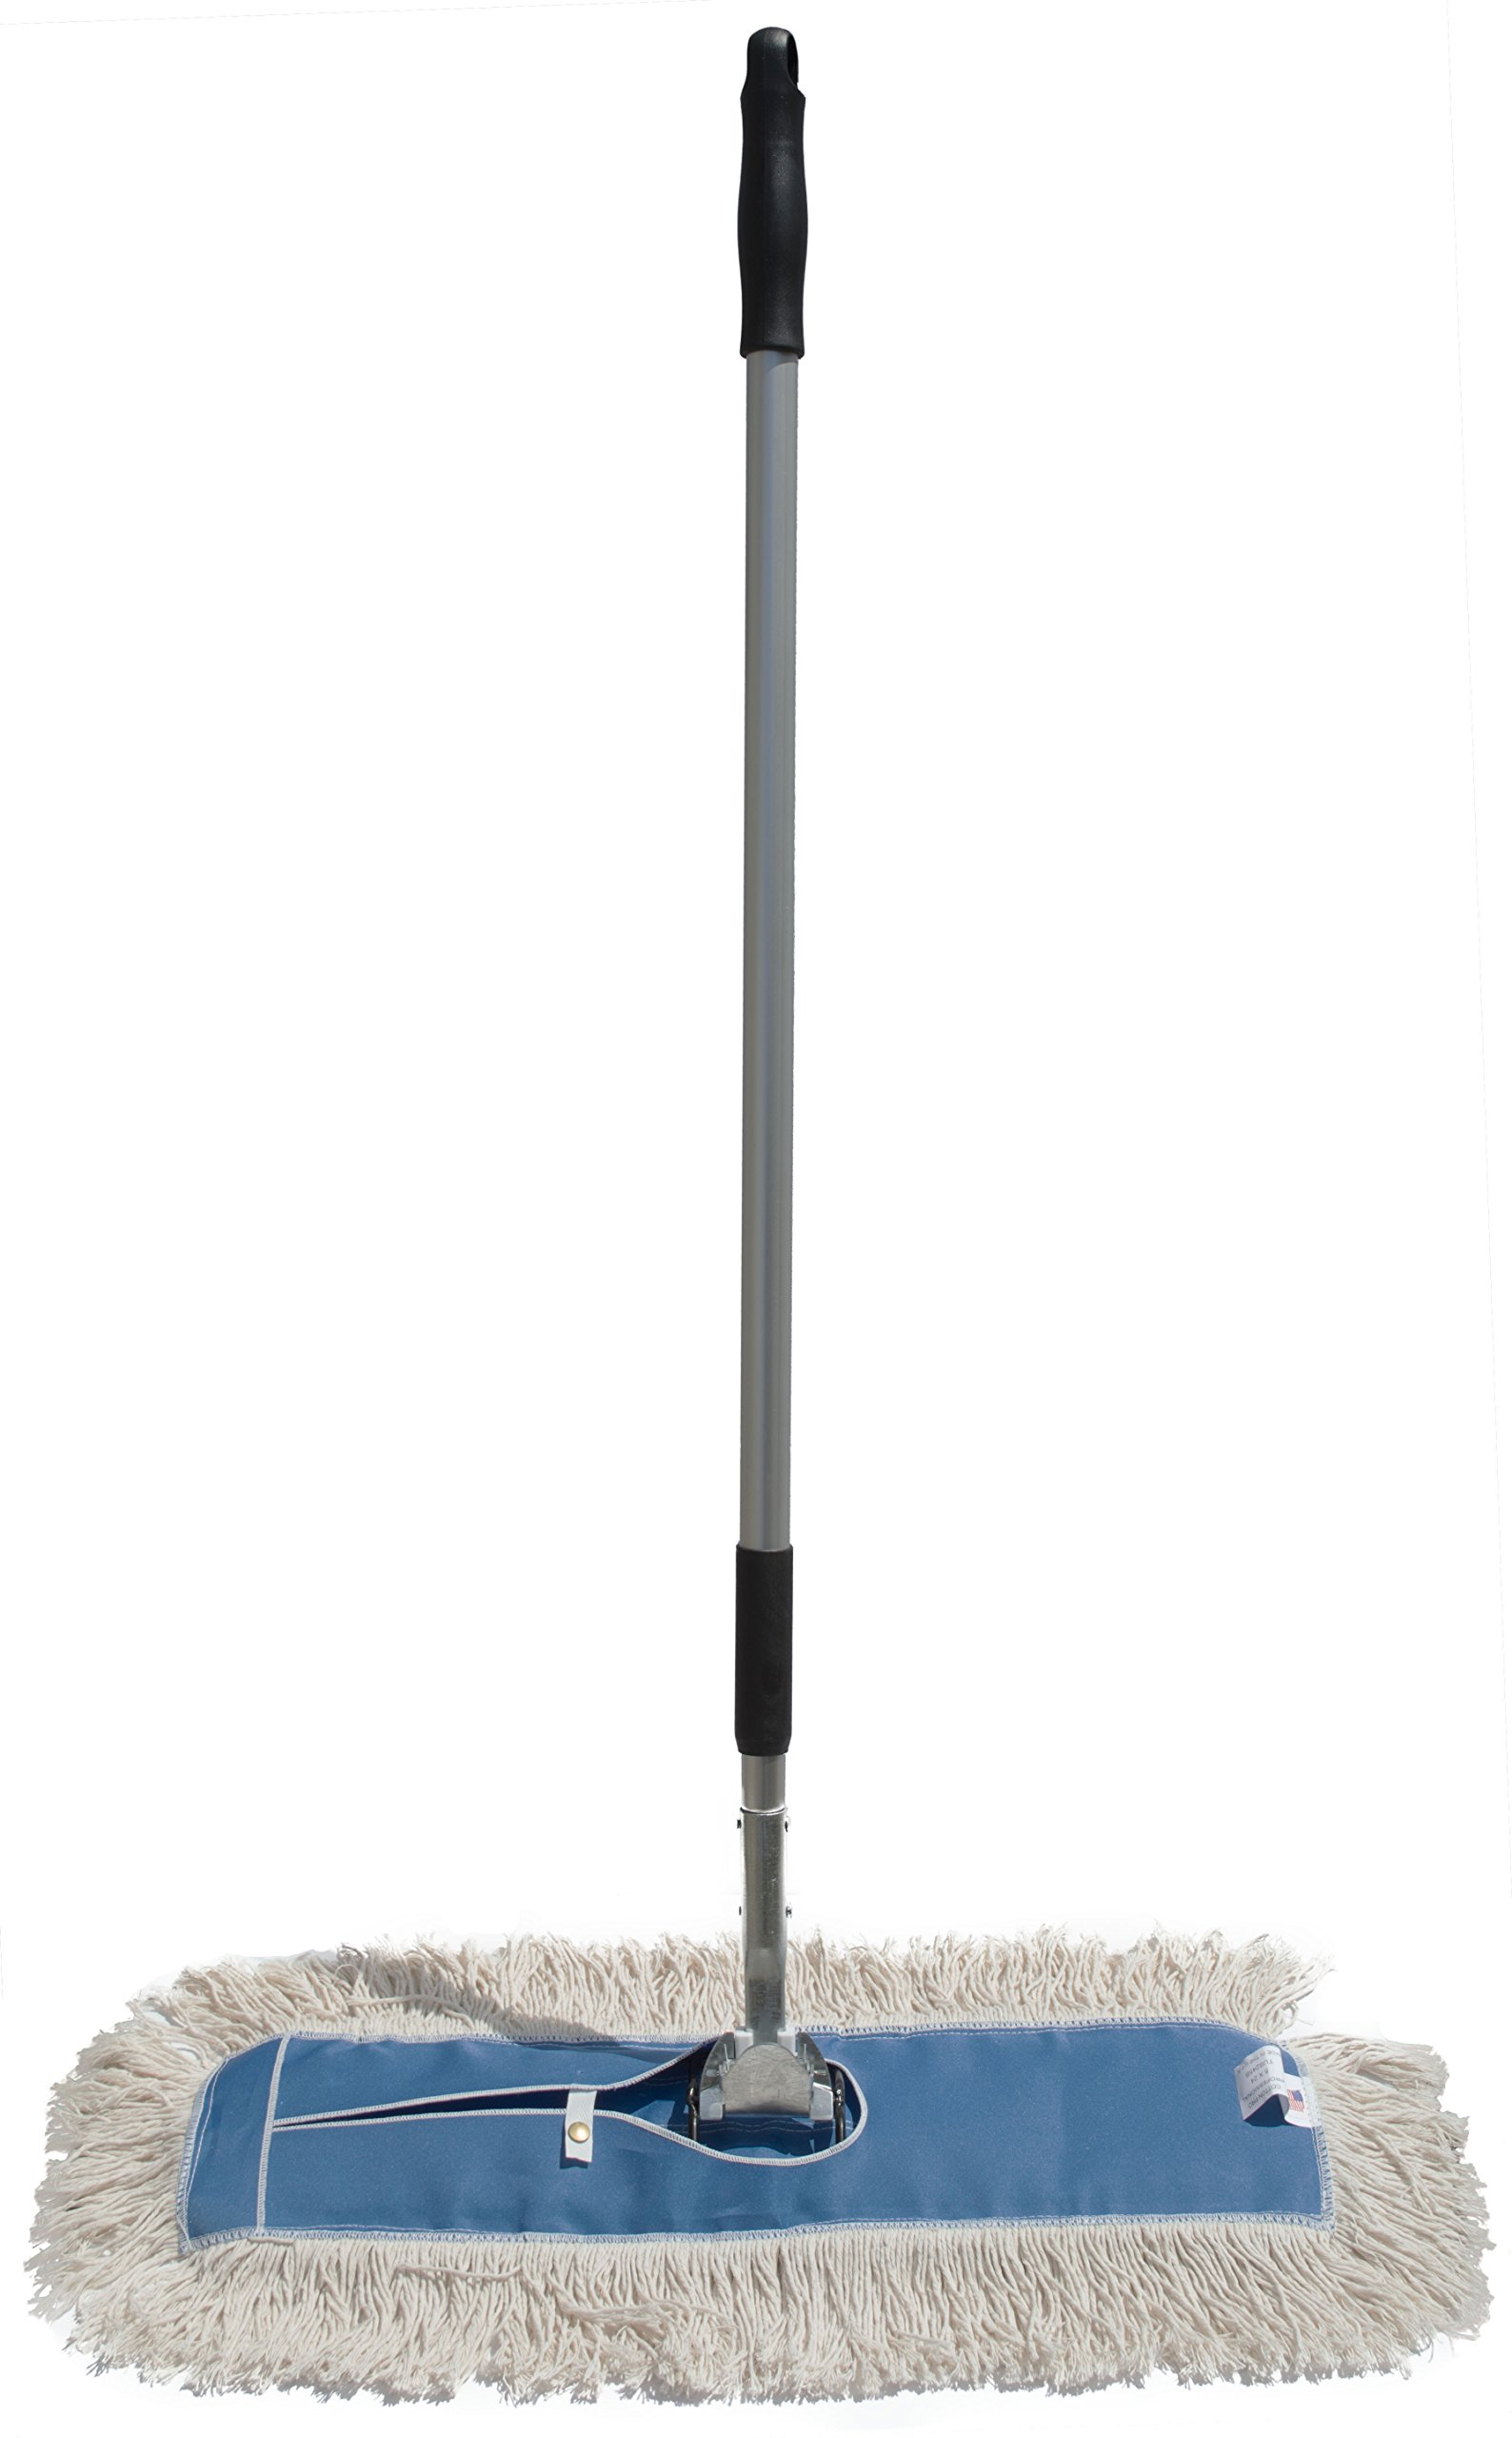 Nine Forty Industrial | Commercial Strength Ultimate Cotton Dust Mop Head with Aluminum Quick Change Extension Handle and Frame | Hardwood Floor Mop (24'' Wide X 5'') by Nine Forty